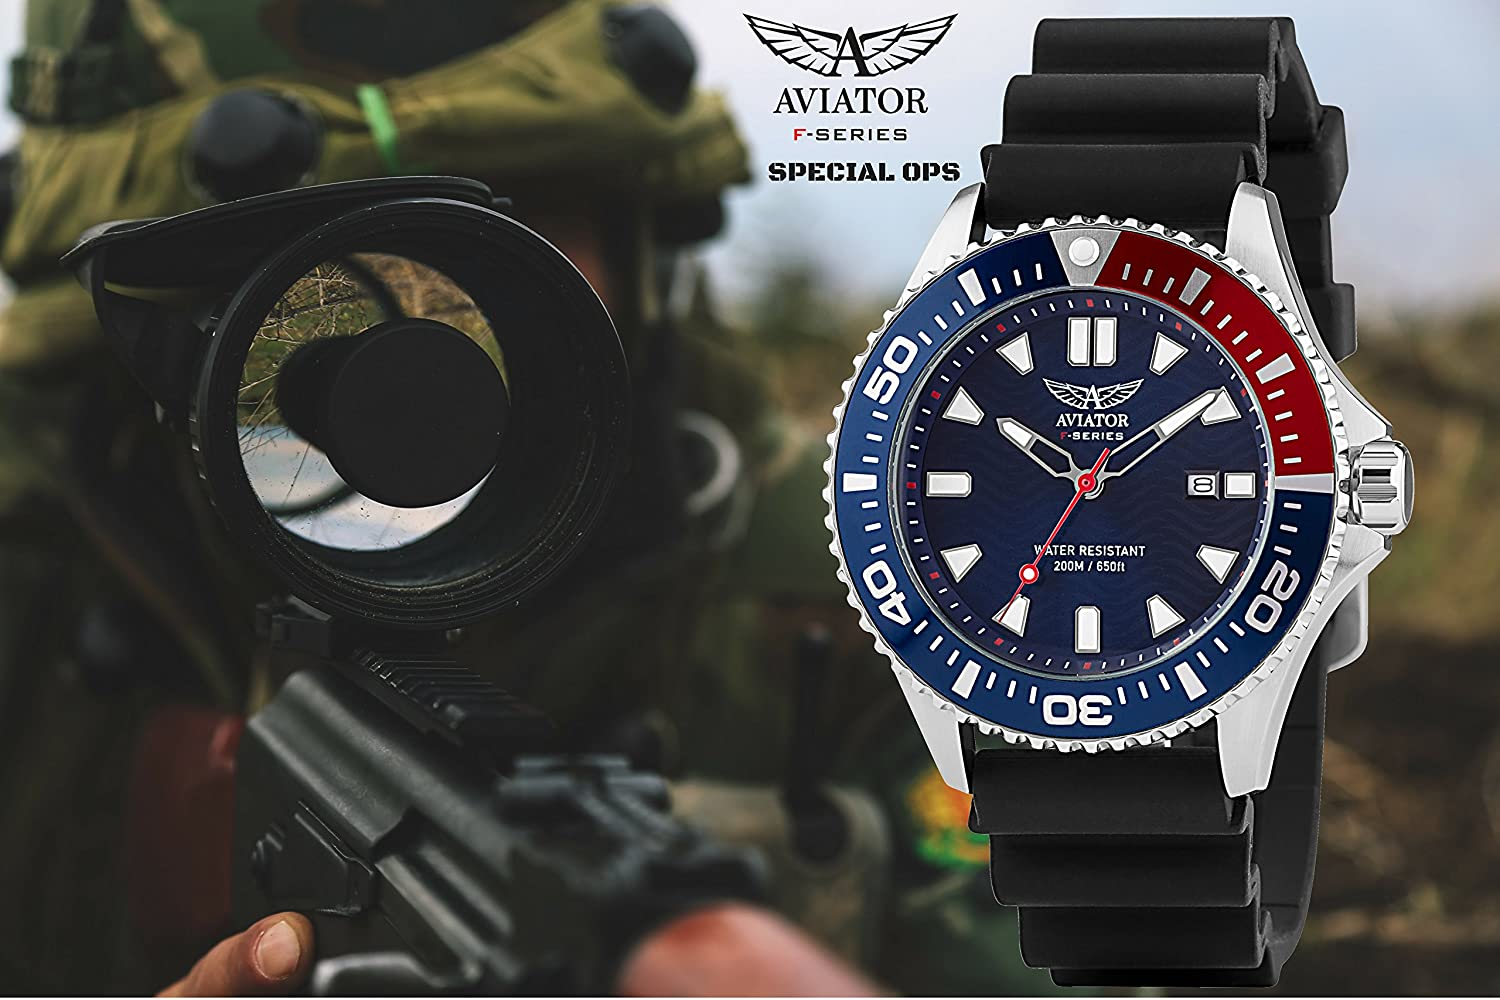 Amazon.com: AVIATOR Special Ops Diver Watch – Divers WR 200m Wristwatch – Army Military Paratroopers Analog Quartz: Aviator F-Series: Watches